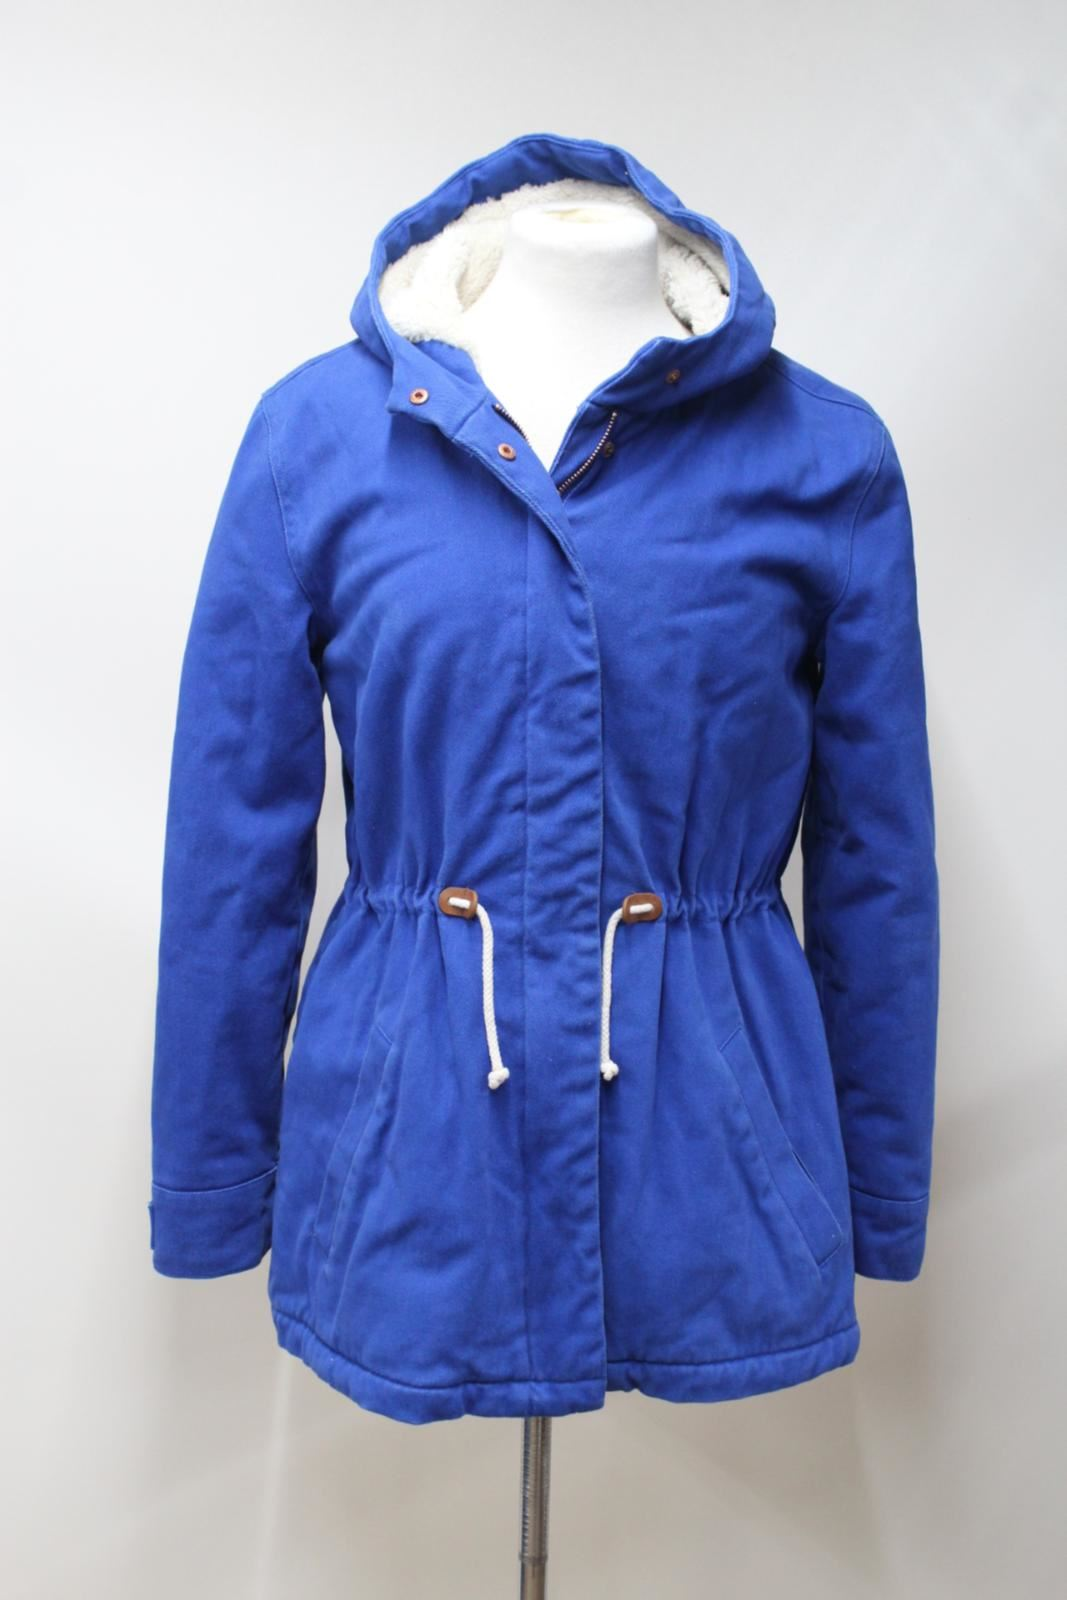 Jacket 15 Years Boden Drawstring Girls Waist Up Hooded Blue 16 Parka Zip wHq18w4BZ